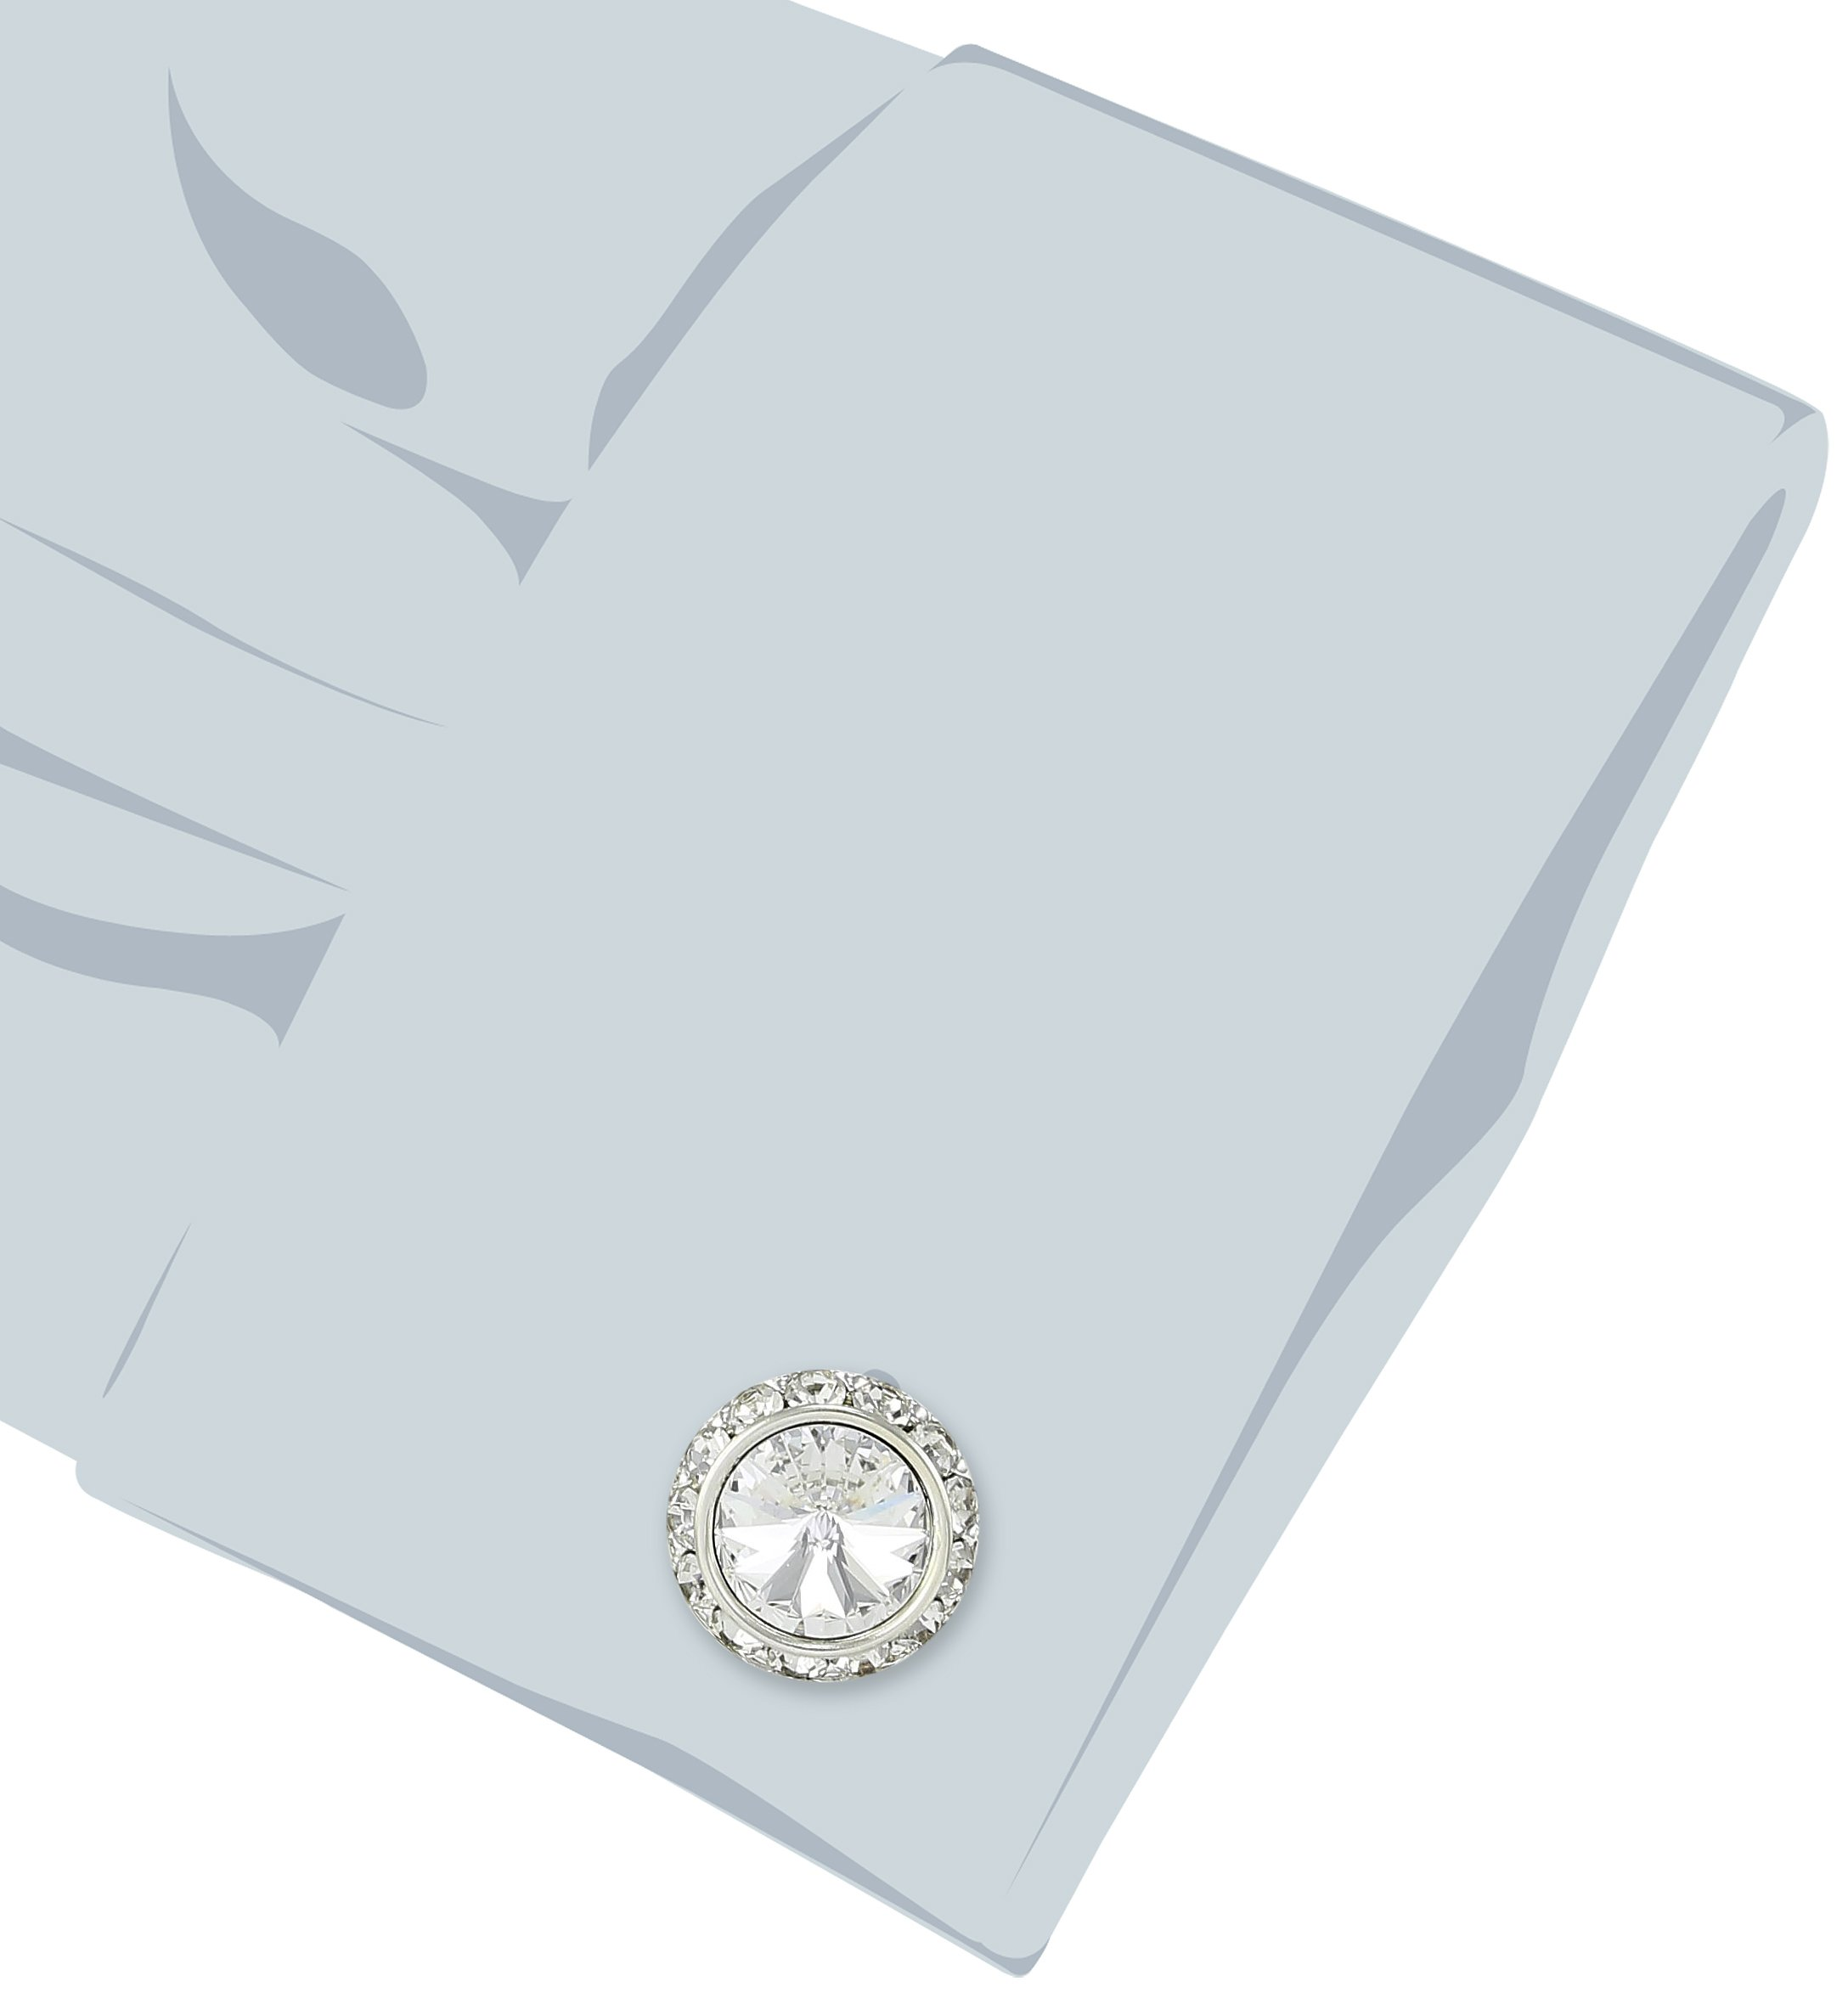 Stacy Adams Men's Silver Clear Rondell Cuff Link, Crystal, One Size by Stacy Adams (Image #2)